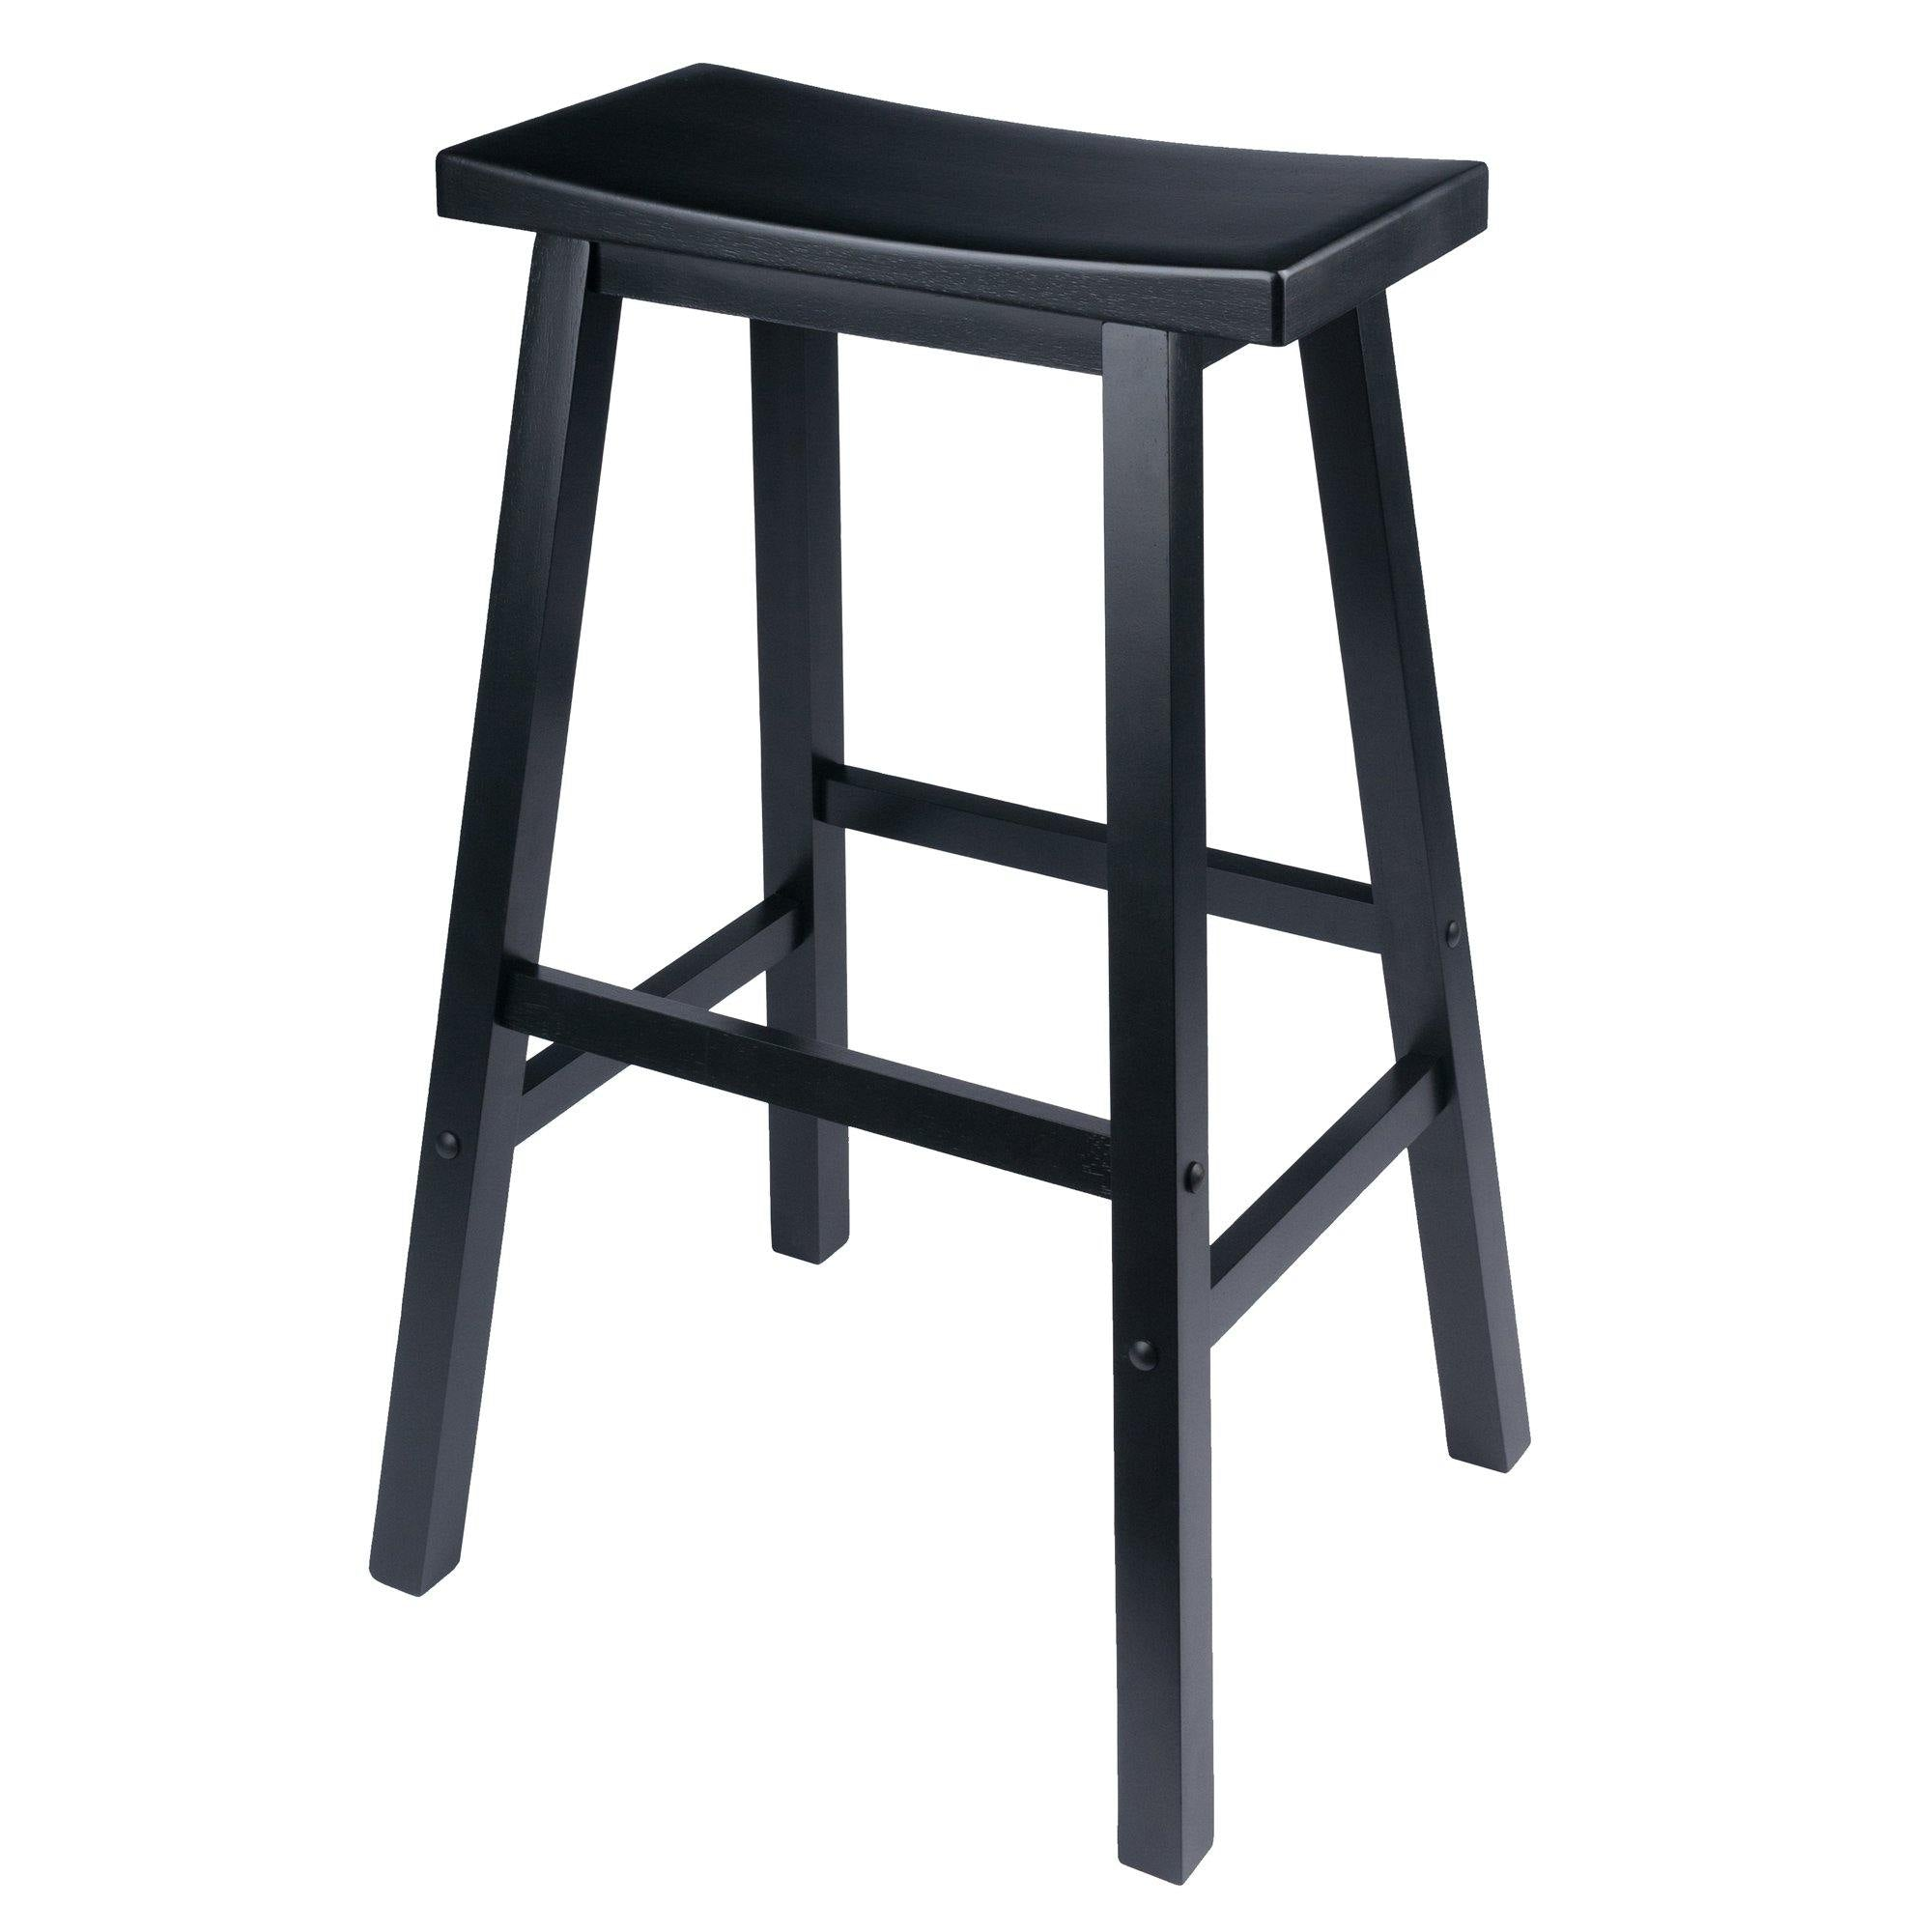 Satori Saddle Seat Bar Stool, Black - My USA Furniture